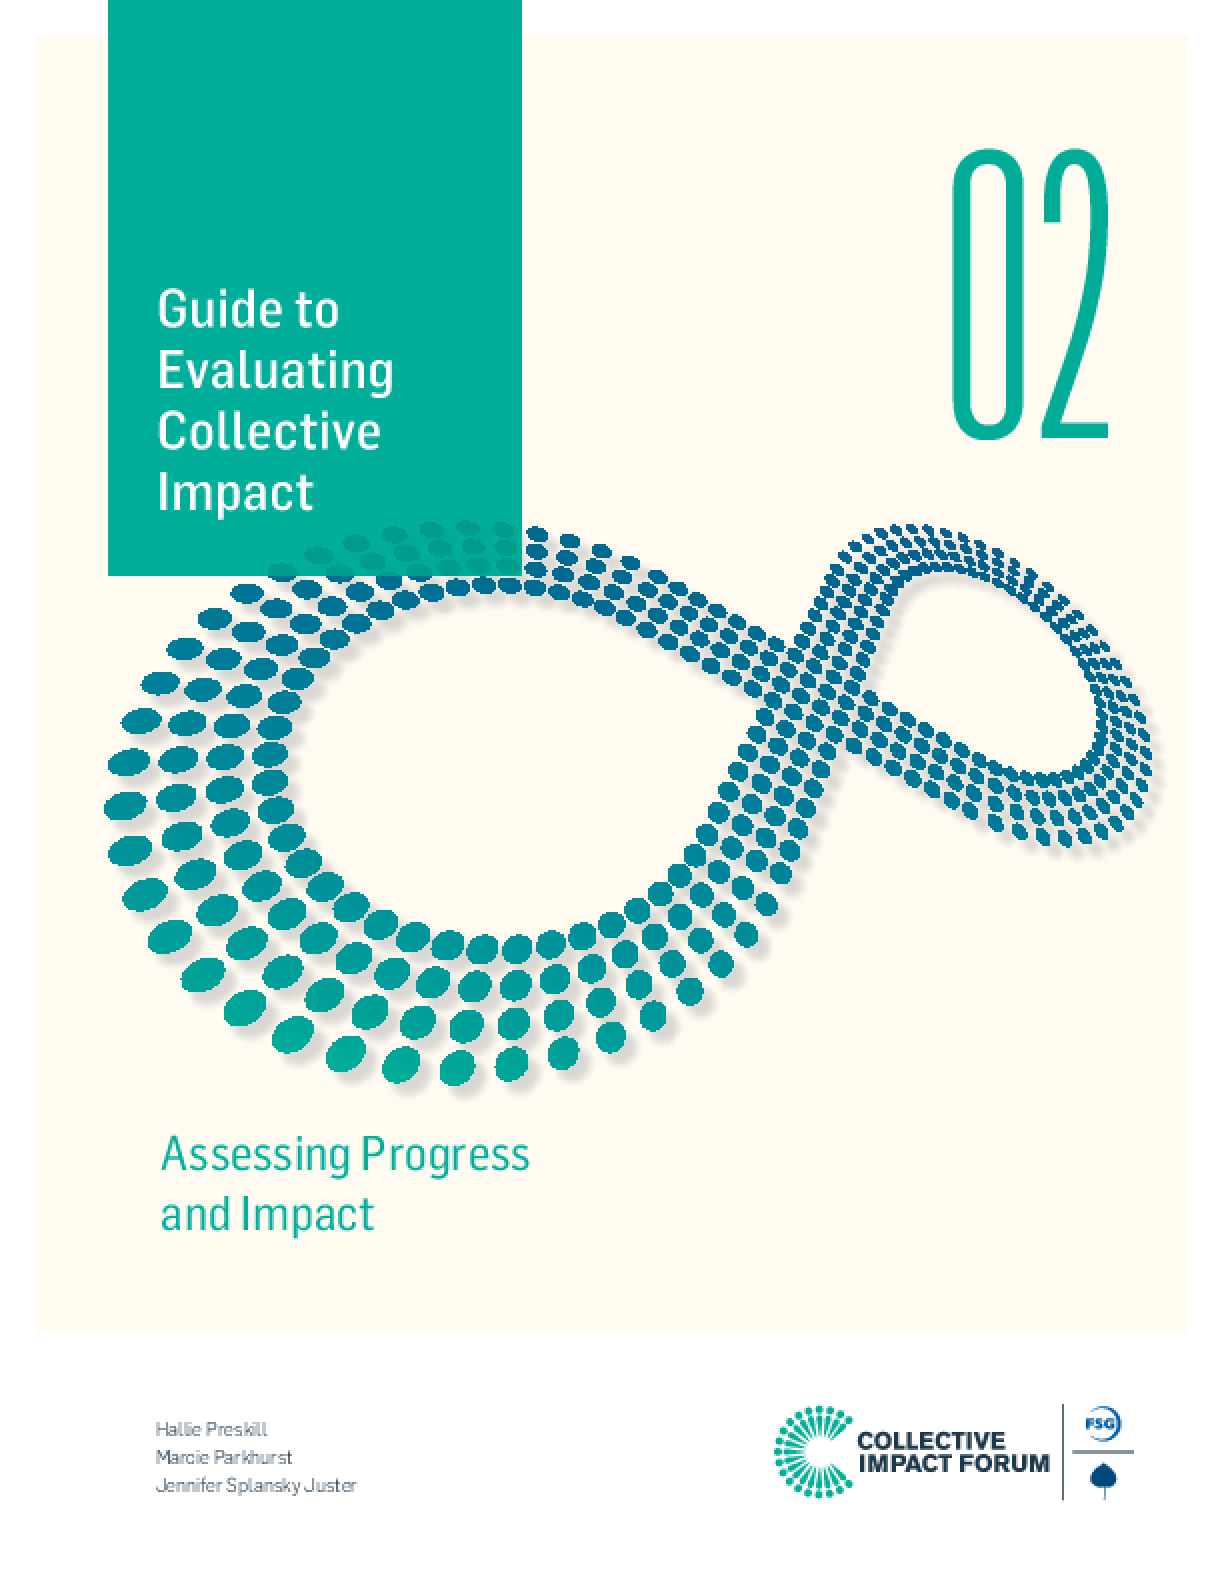 Guide to Evaluating Collective Impact: Assessing Progress and Impact